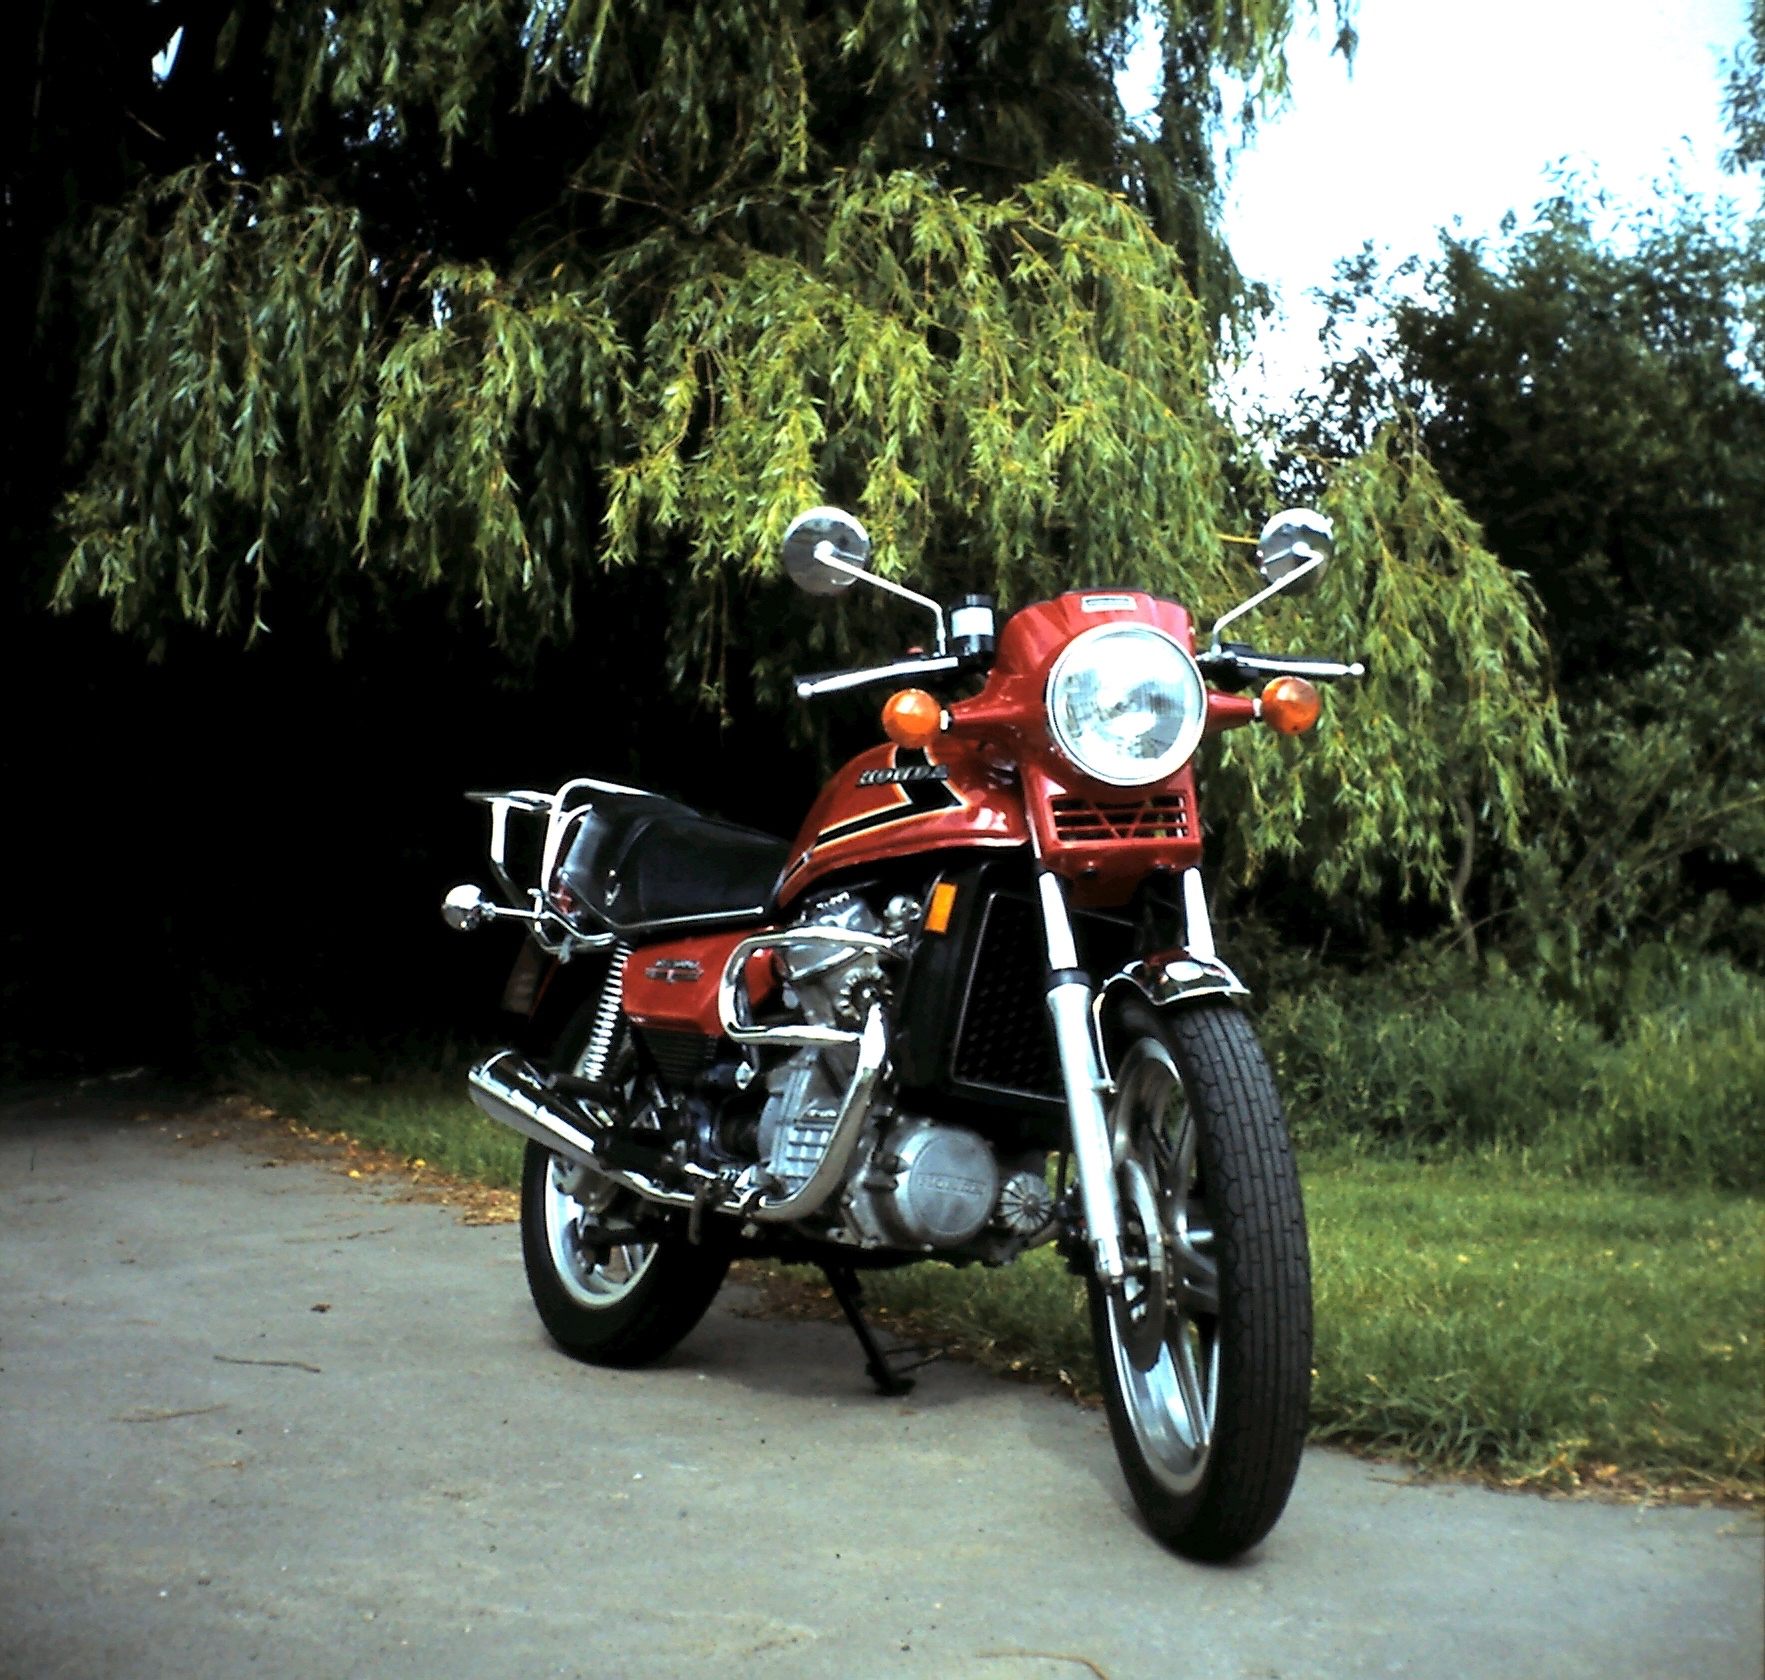 The front three-quarter view of a S-registration red Honda CX500, parked in the sunshine by a Willow tree